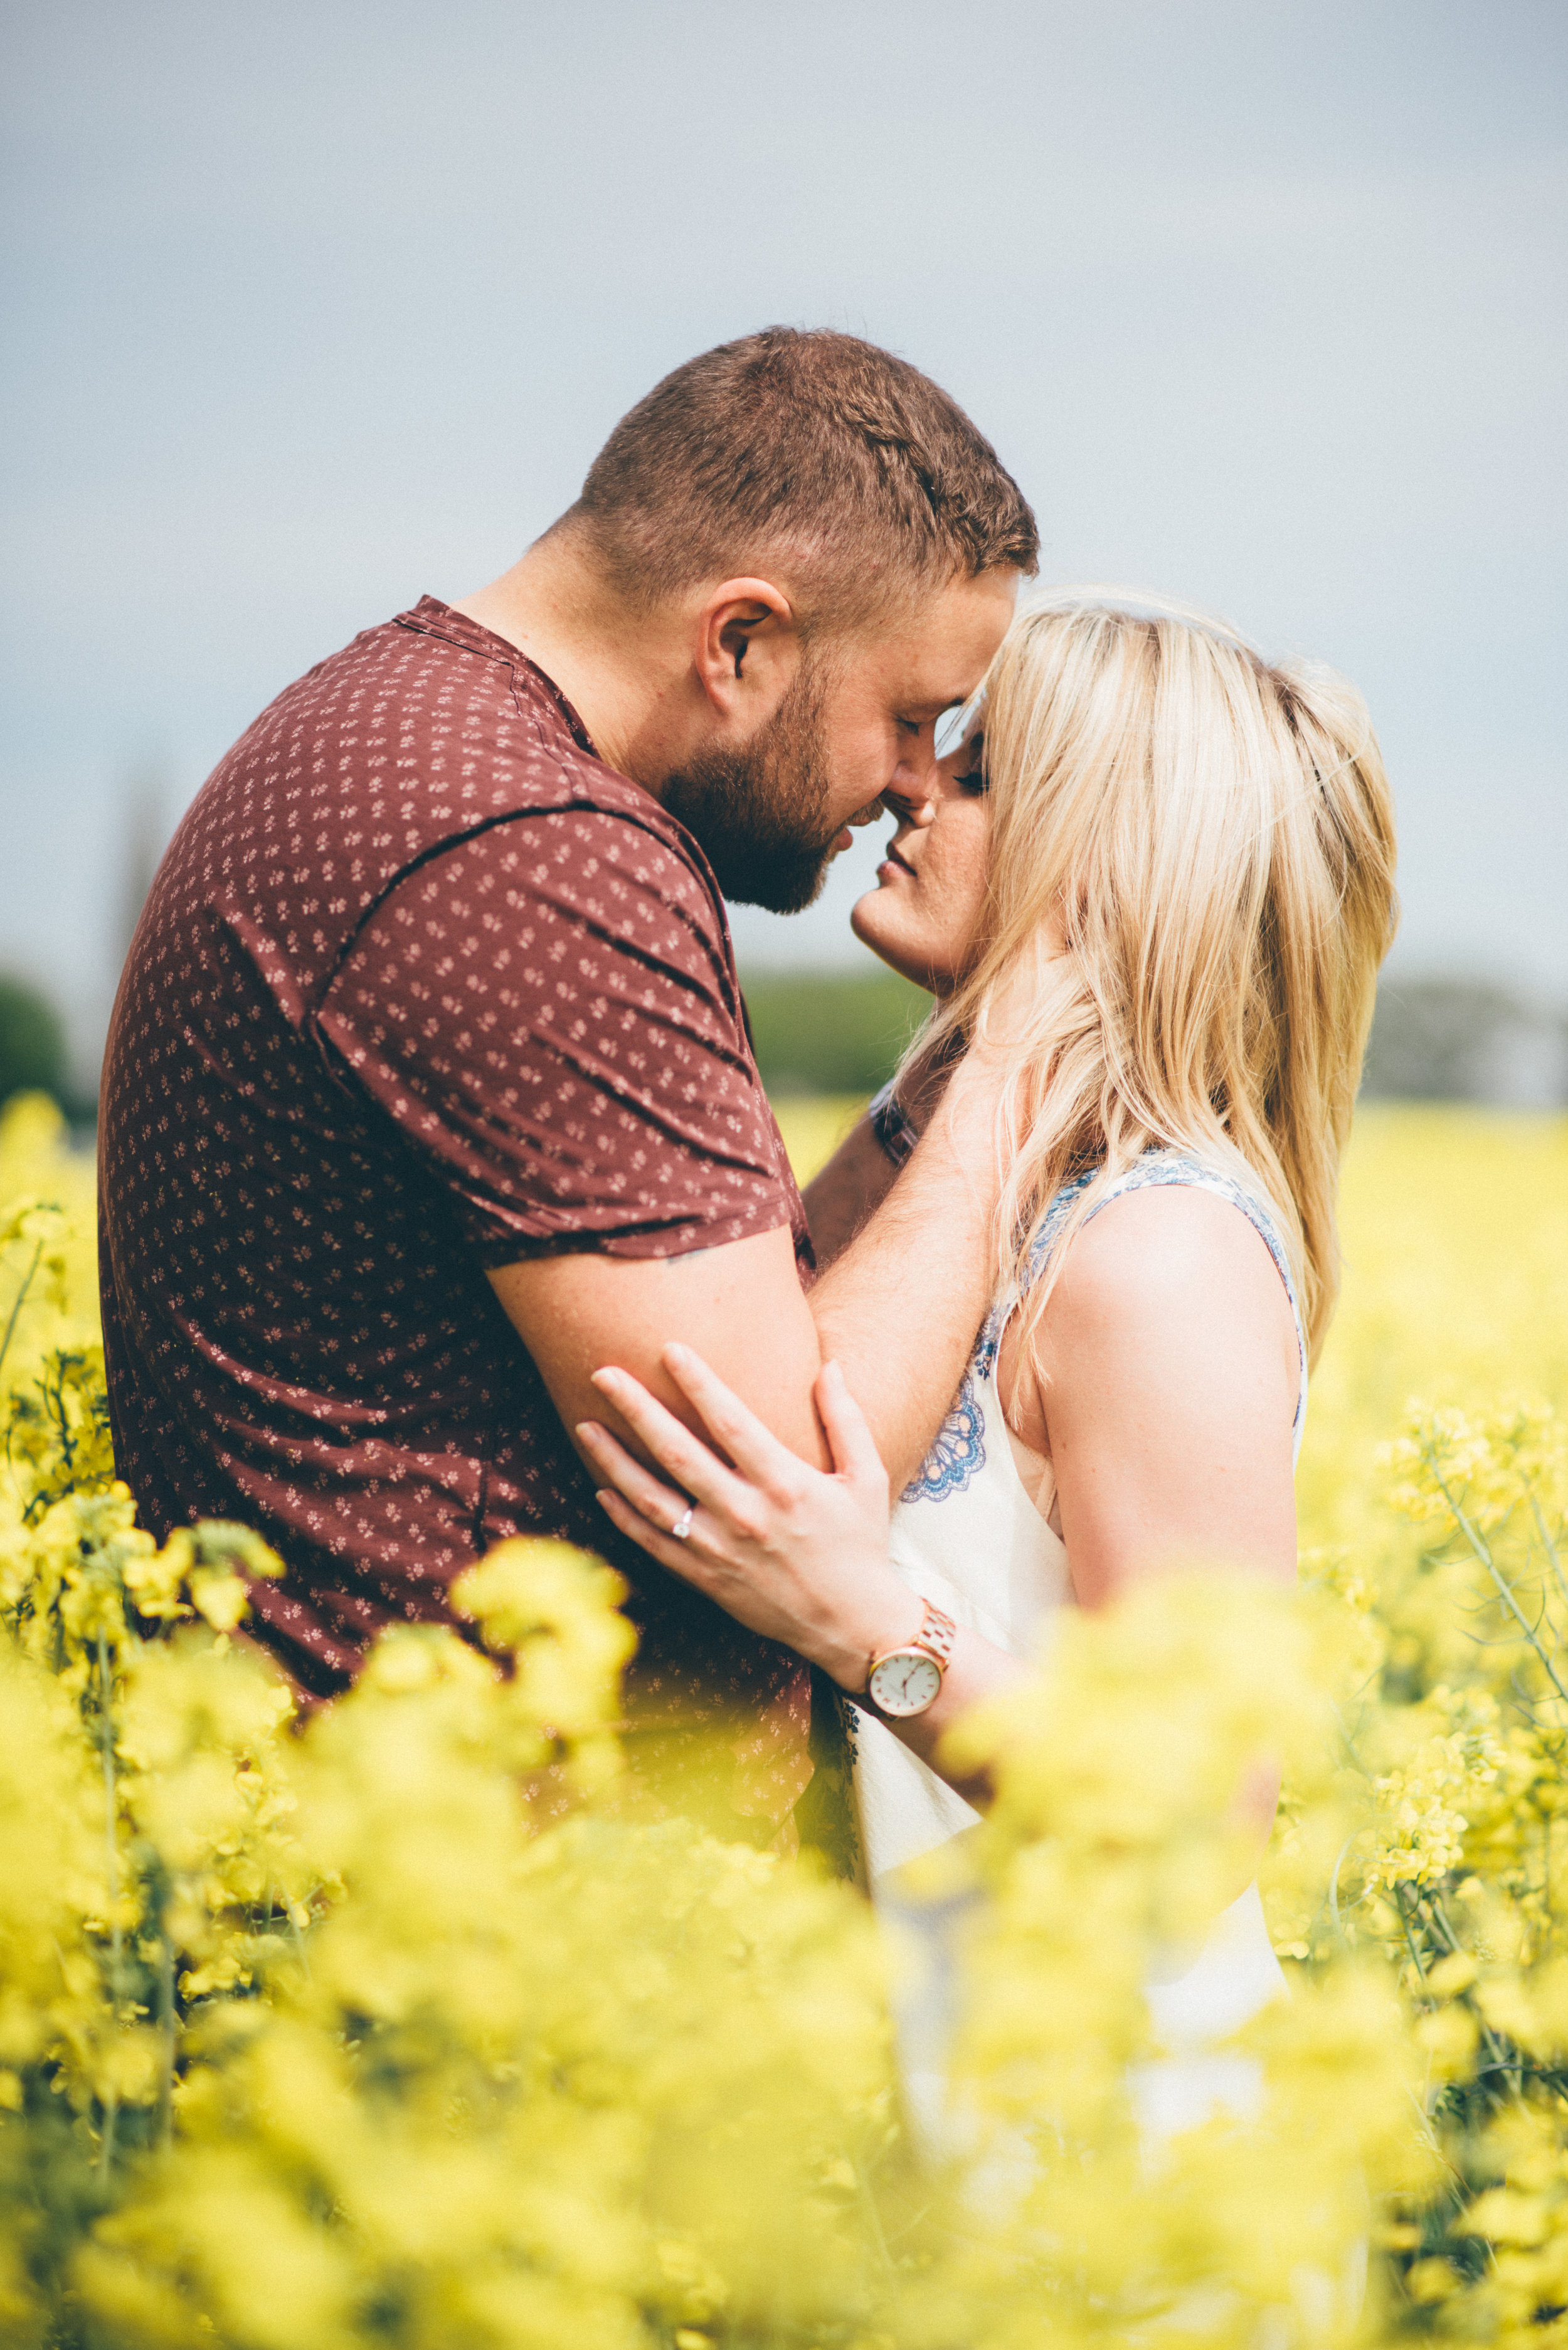 Future husband and wife engage in a incredible embrace in a rape seed field.